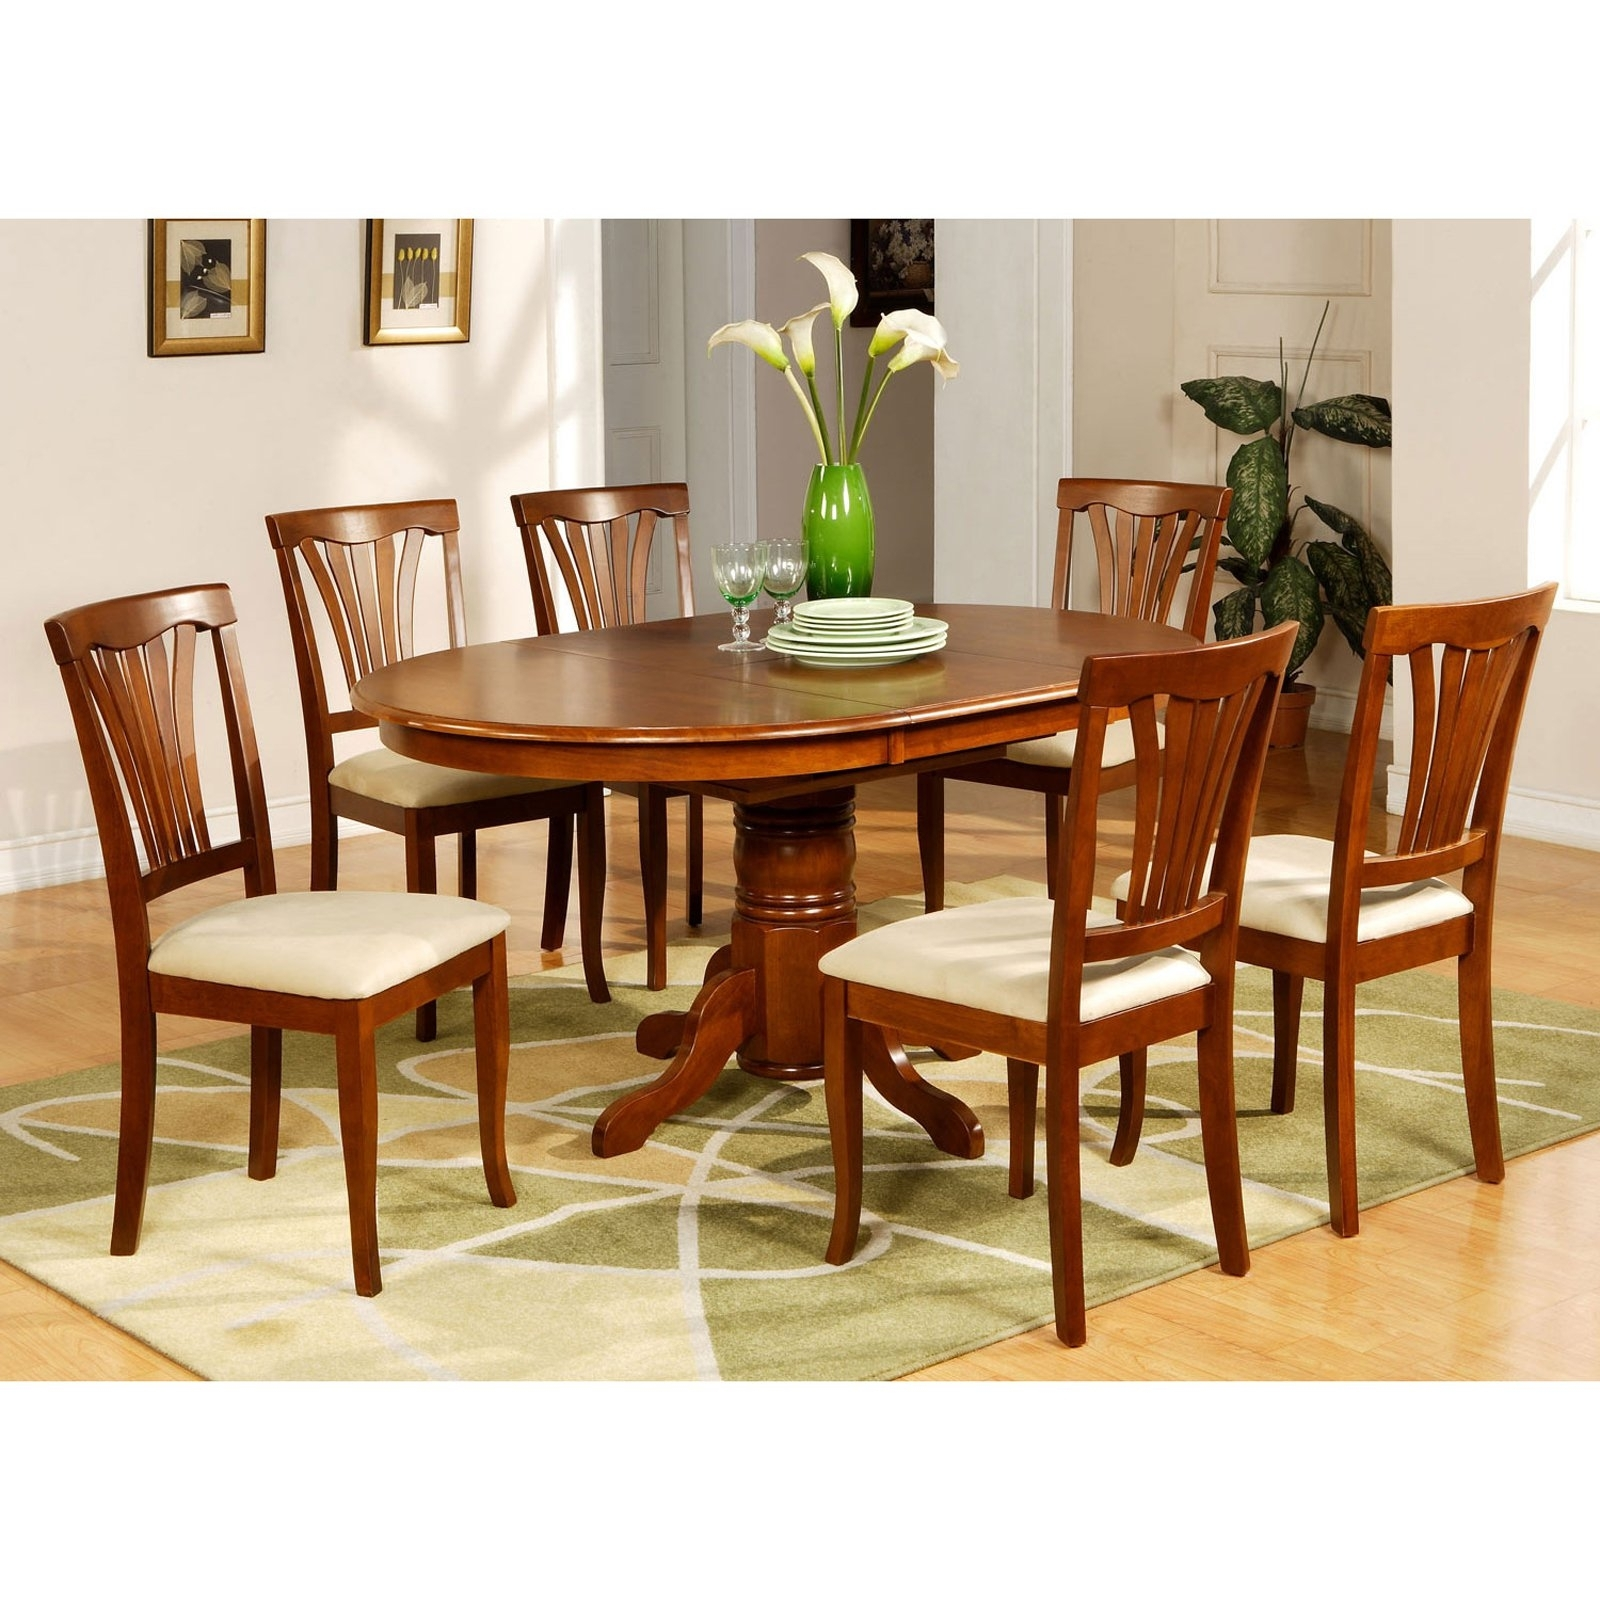 Oval Dining Table Set For 10 - Ideas on Foter